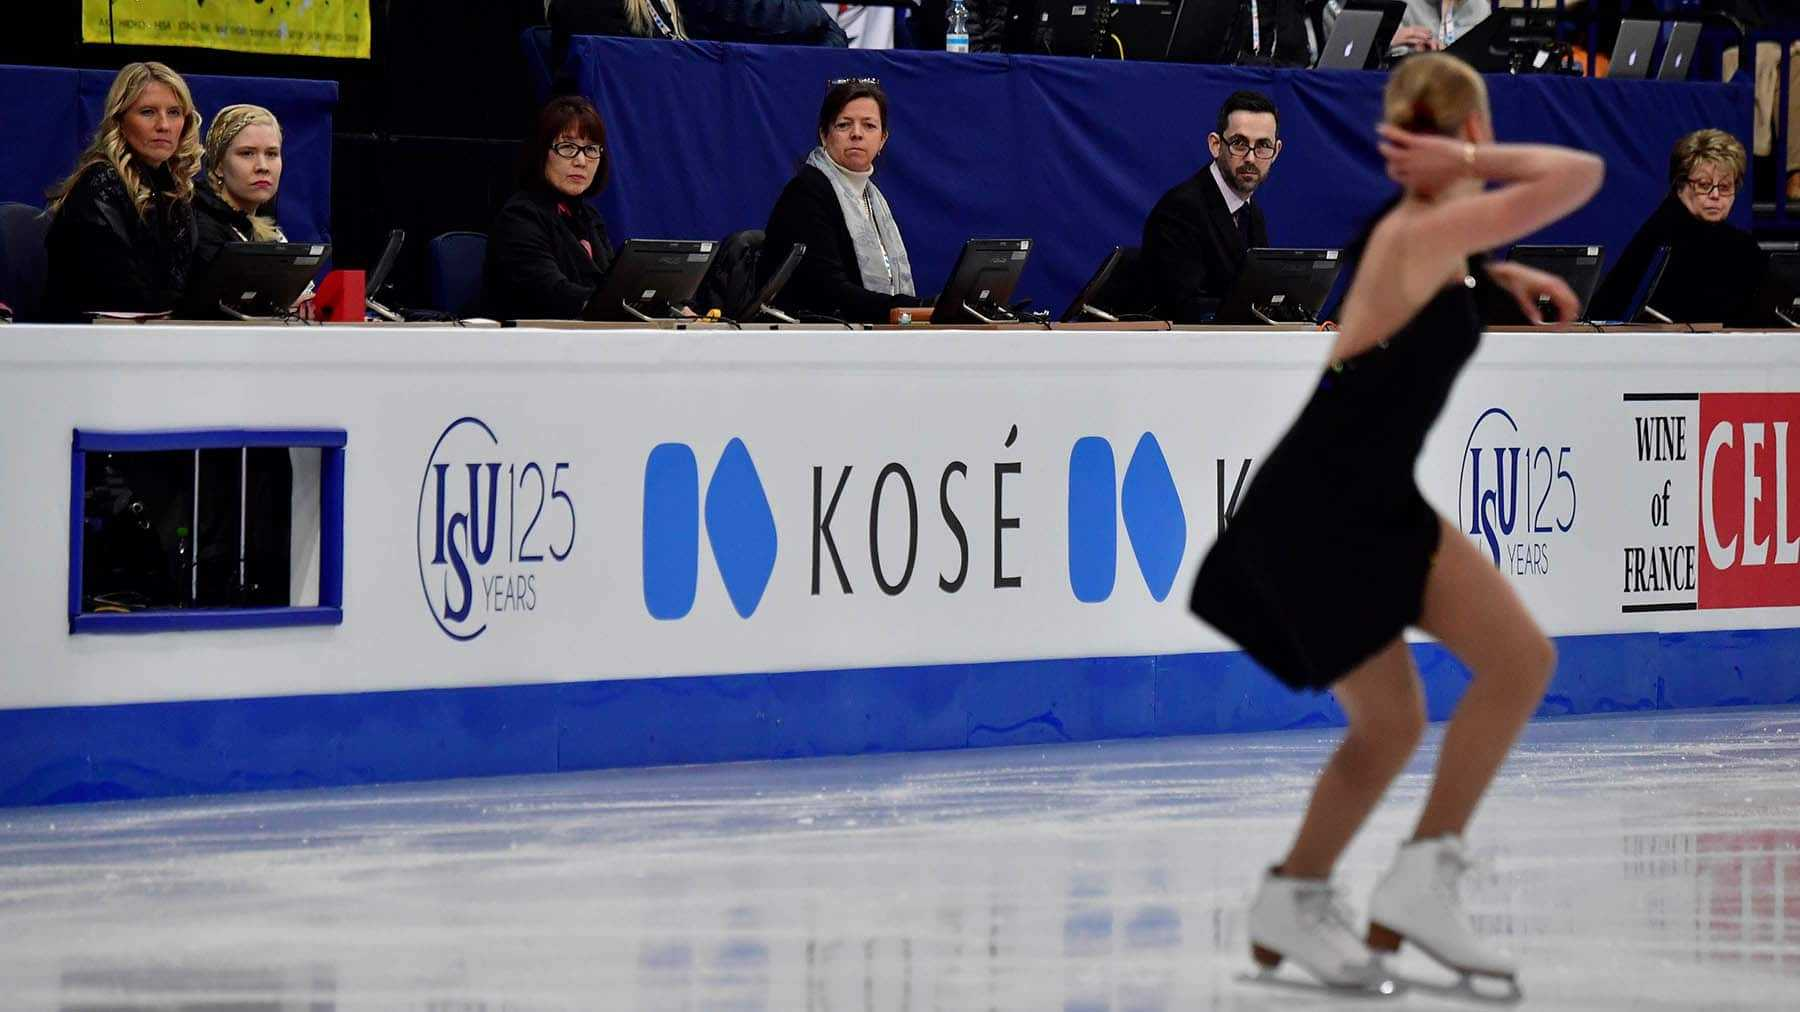 Judges look on as Russia's Anna Pogorilaya, currently ranked fourth, competes in the womens short program at the ISU World Figure Skating Championships in Helsinki, Finland on March 29, 2017.